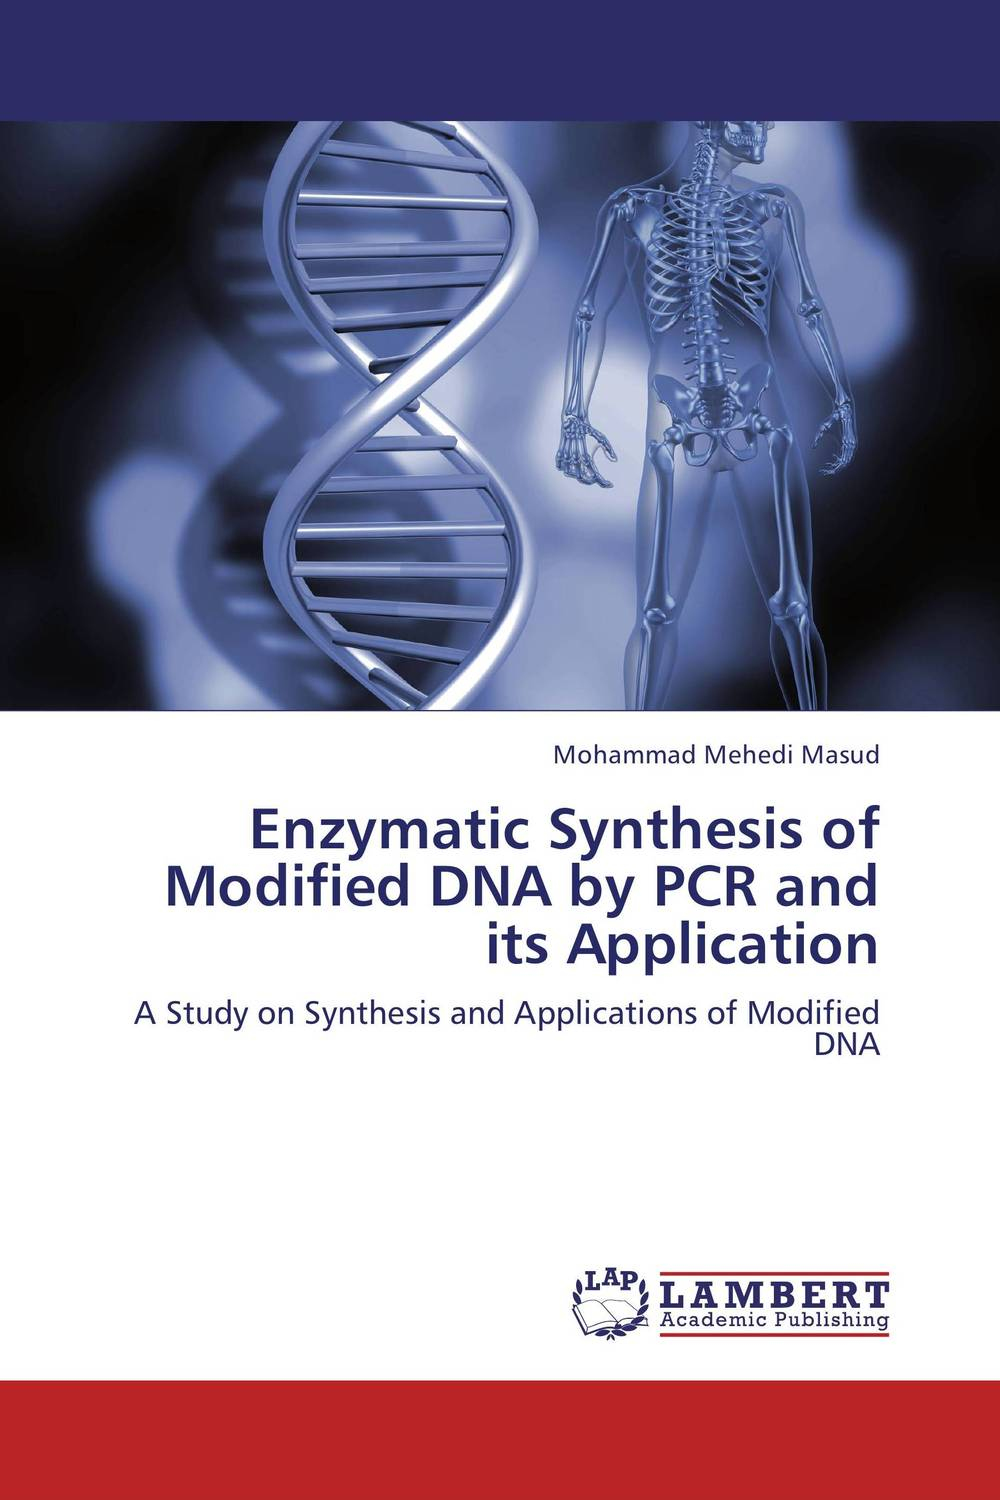 Enzymatic Synthesis of Modified DNA by PCR and its Application modified pnas synthesis and interaction studies with dna